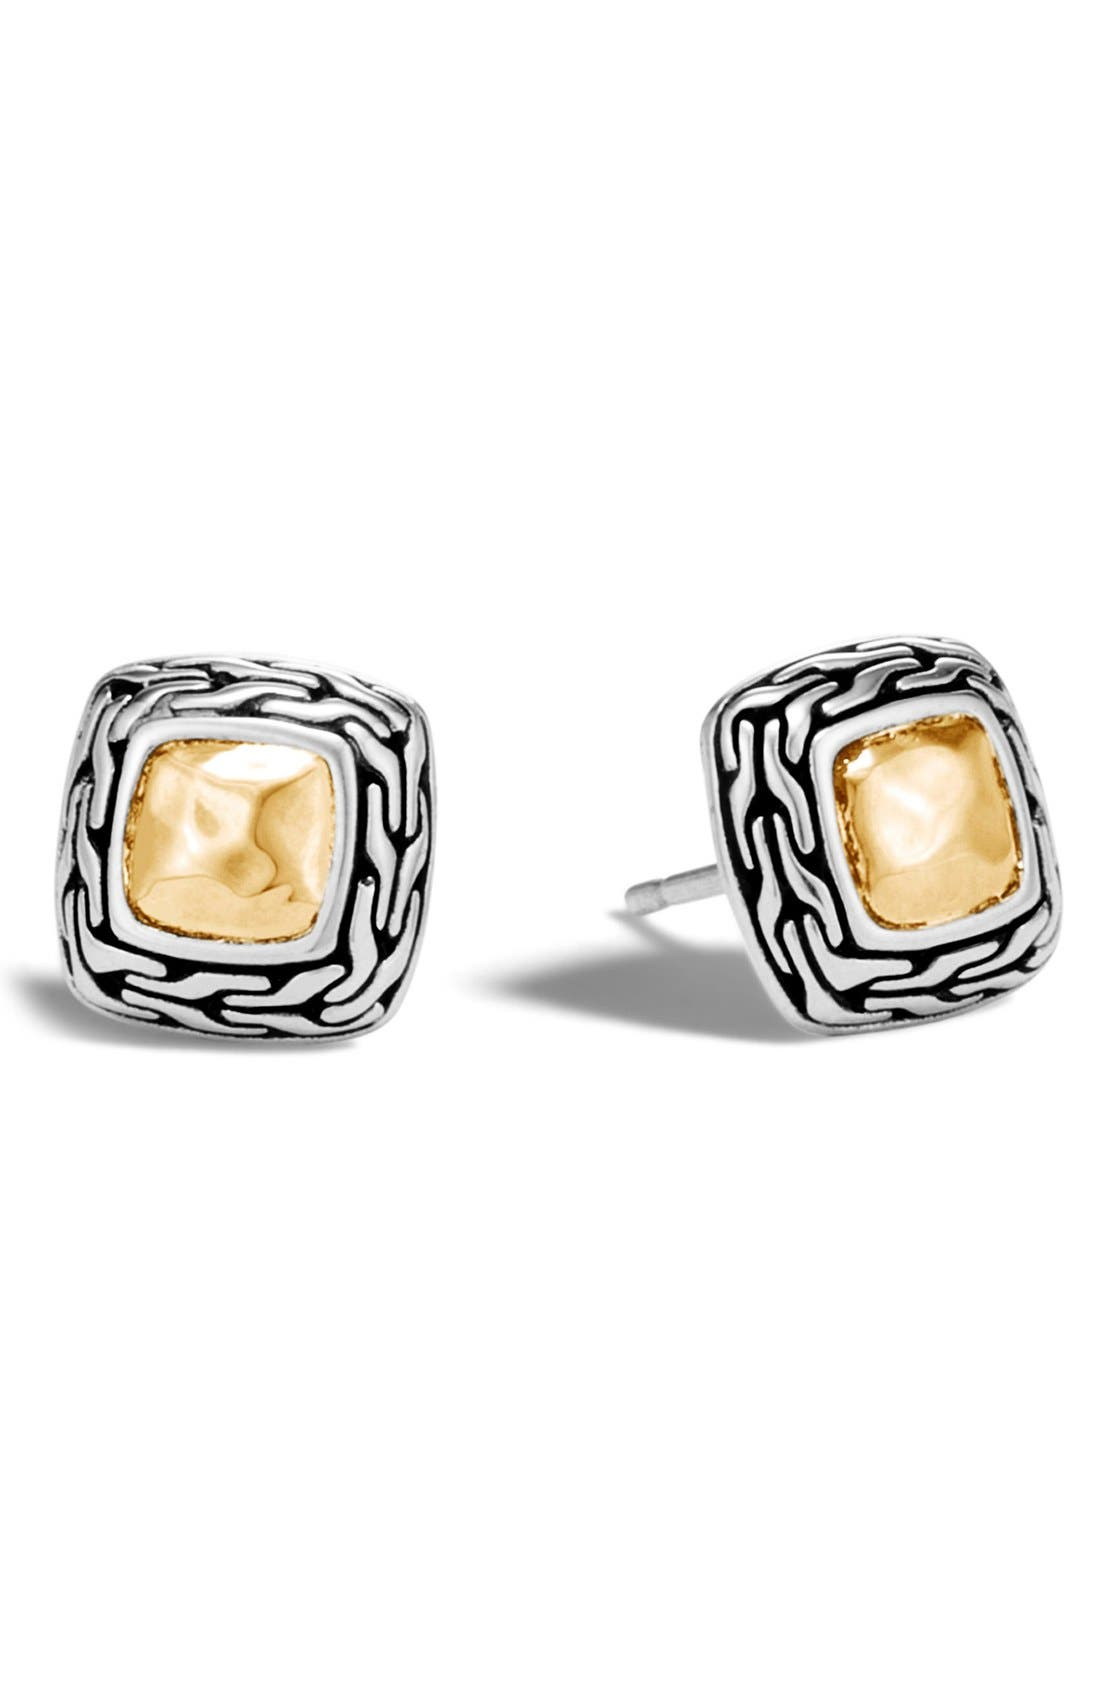 John Hardy Heritage Stud Earrings